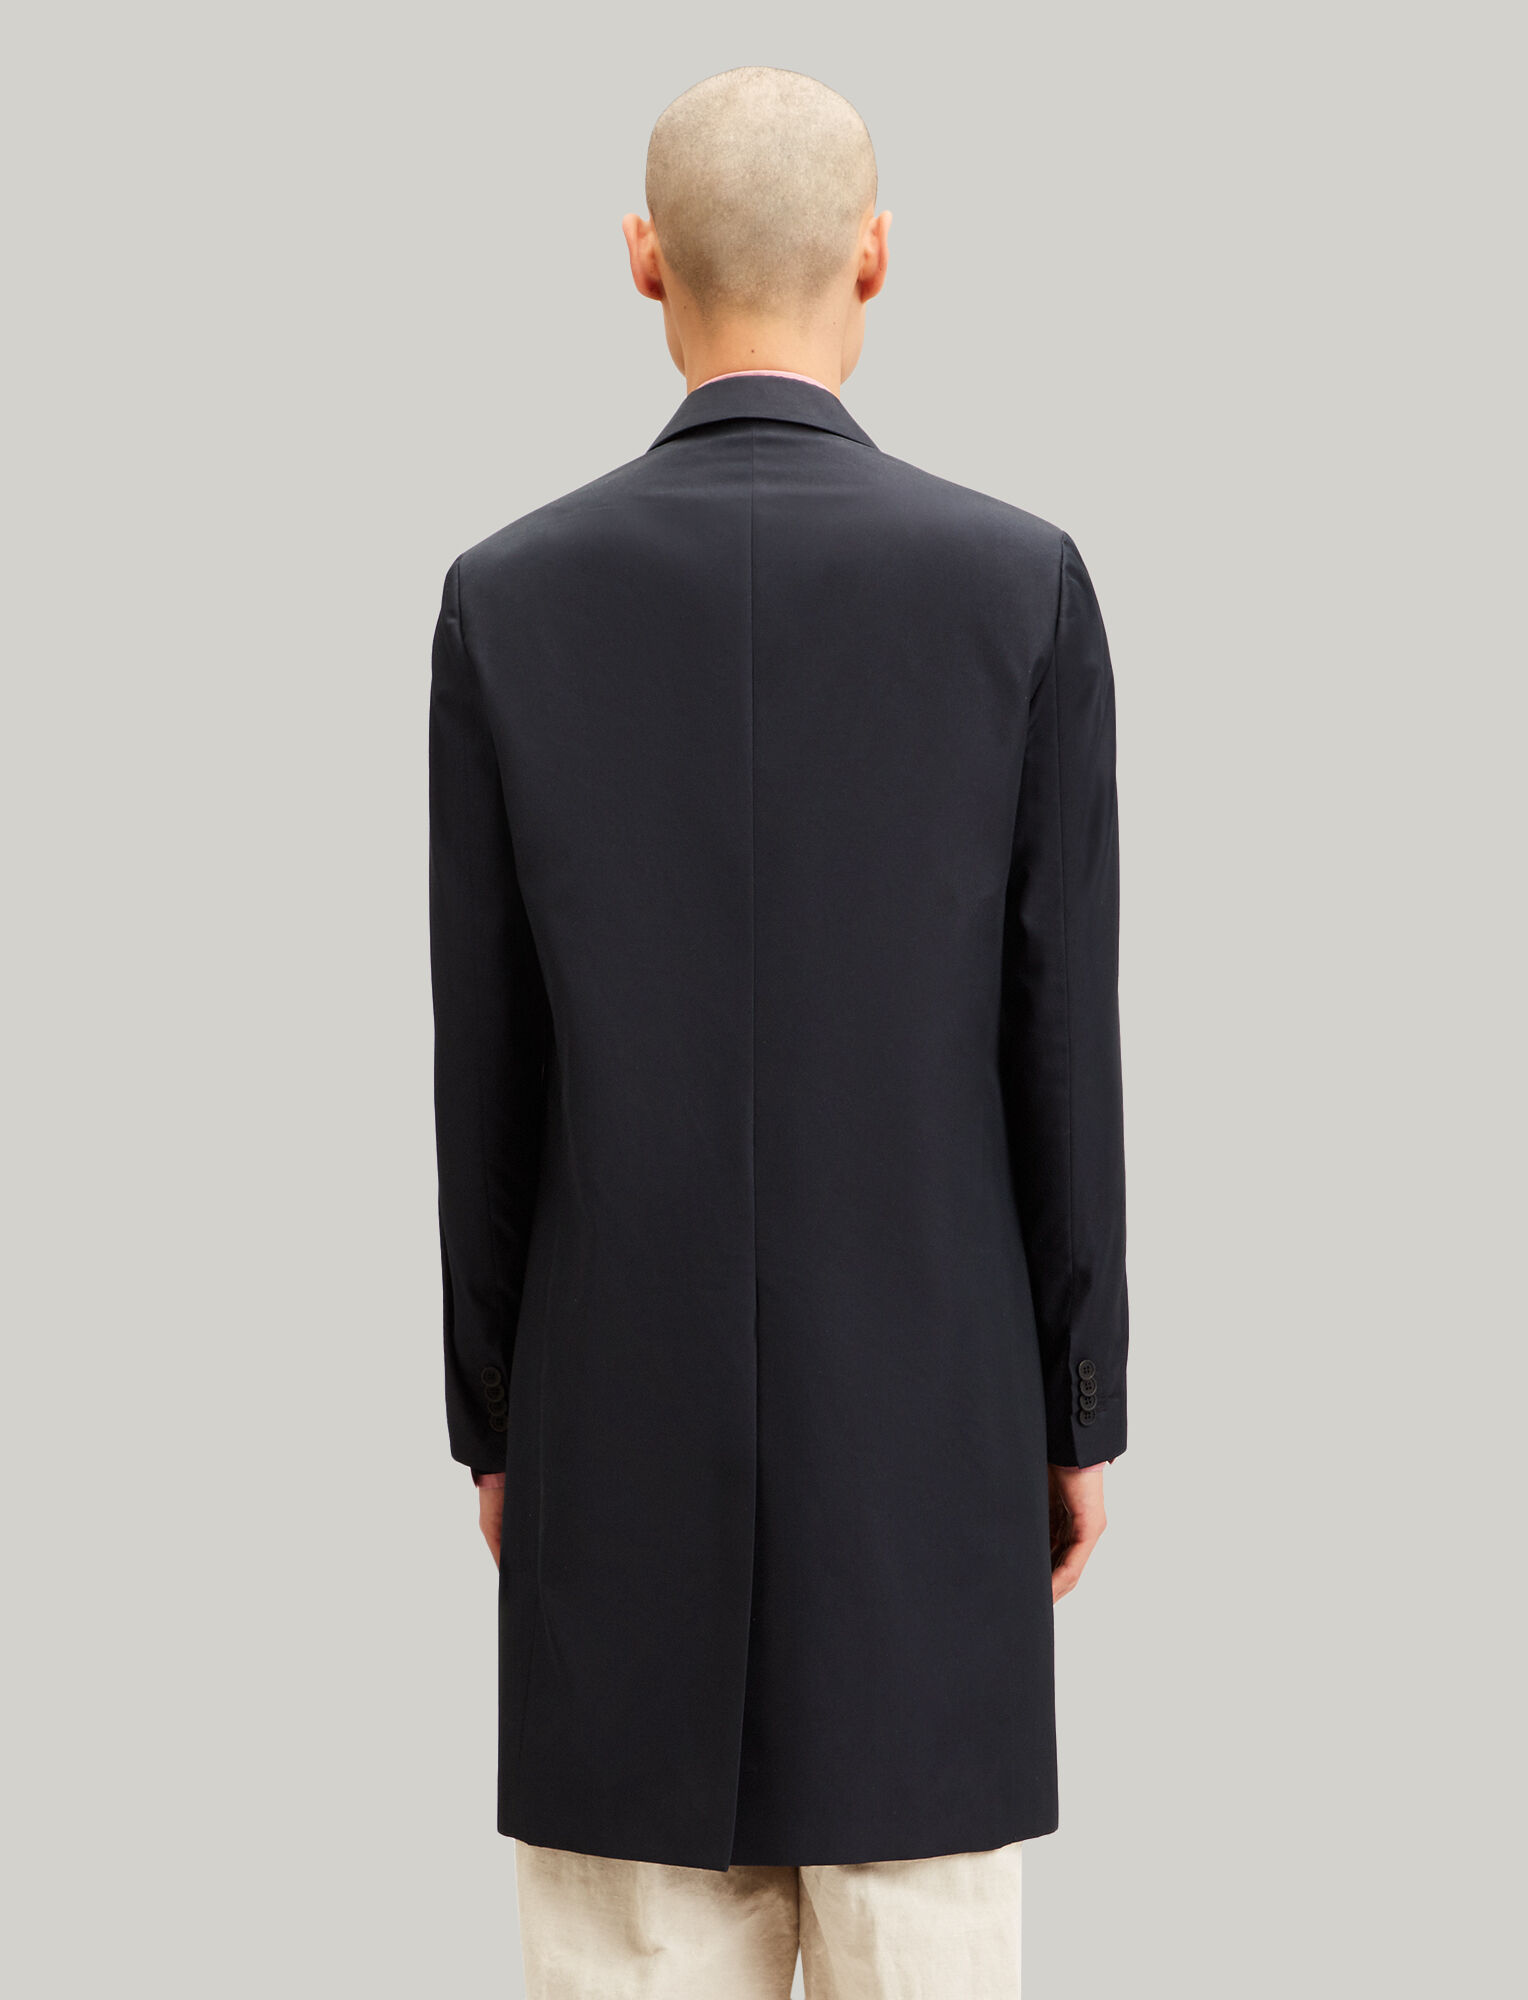 Joseph, London Cotton Nylon Blend Coat, in NAVY